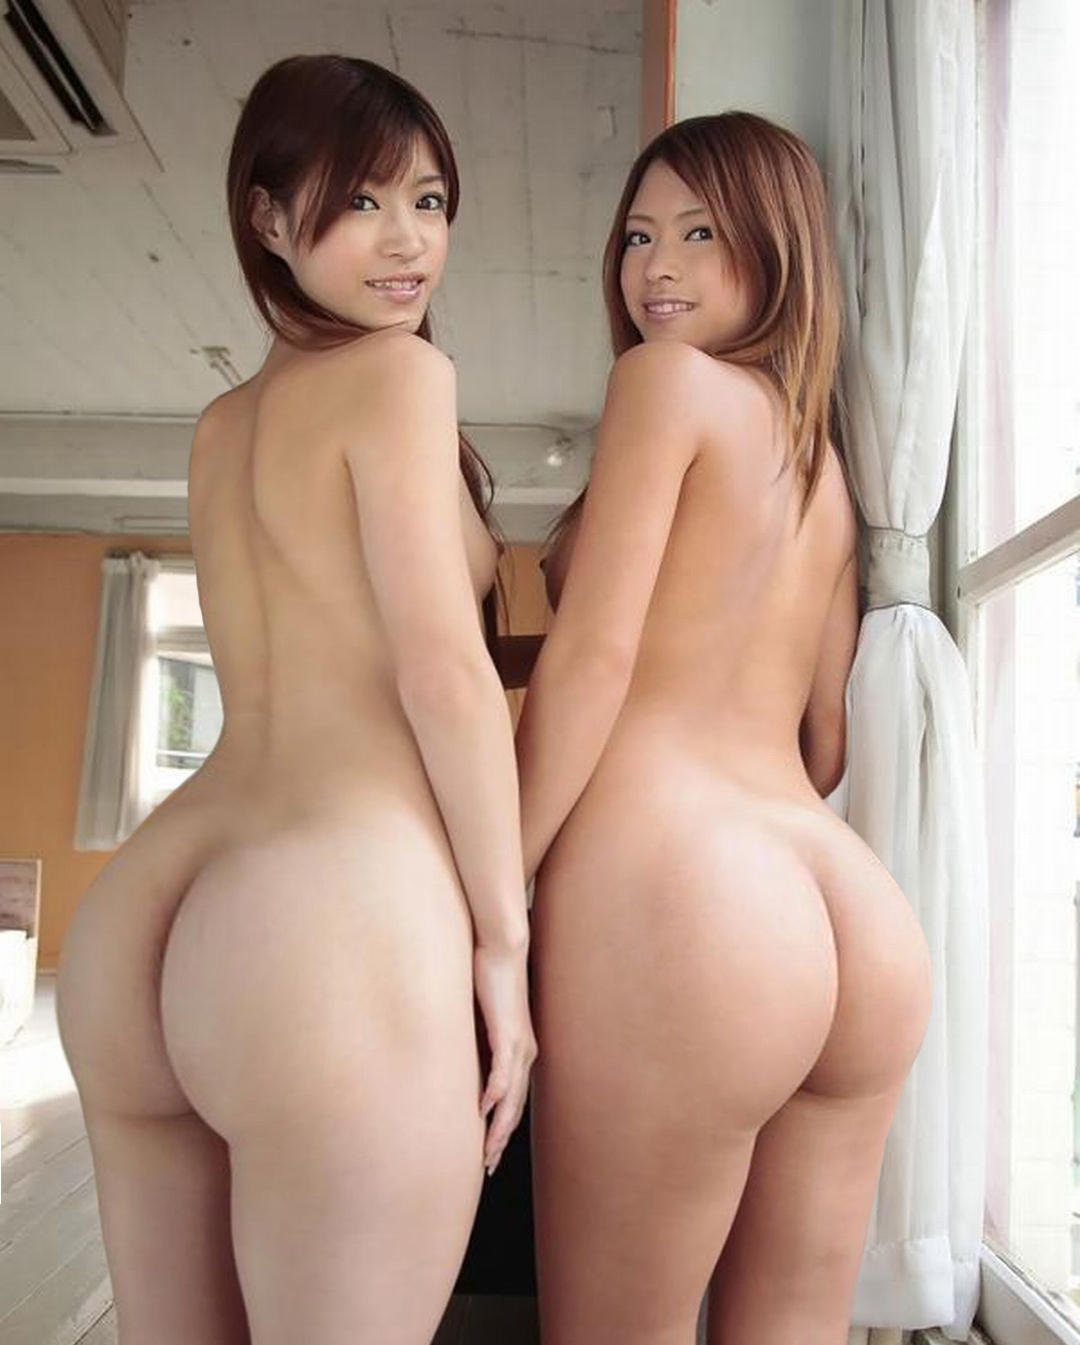 Nude Booty big booty asians nude